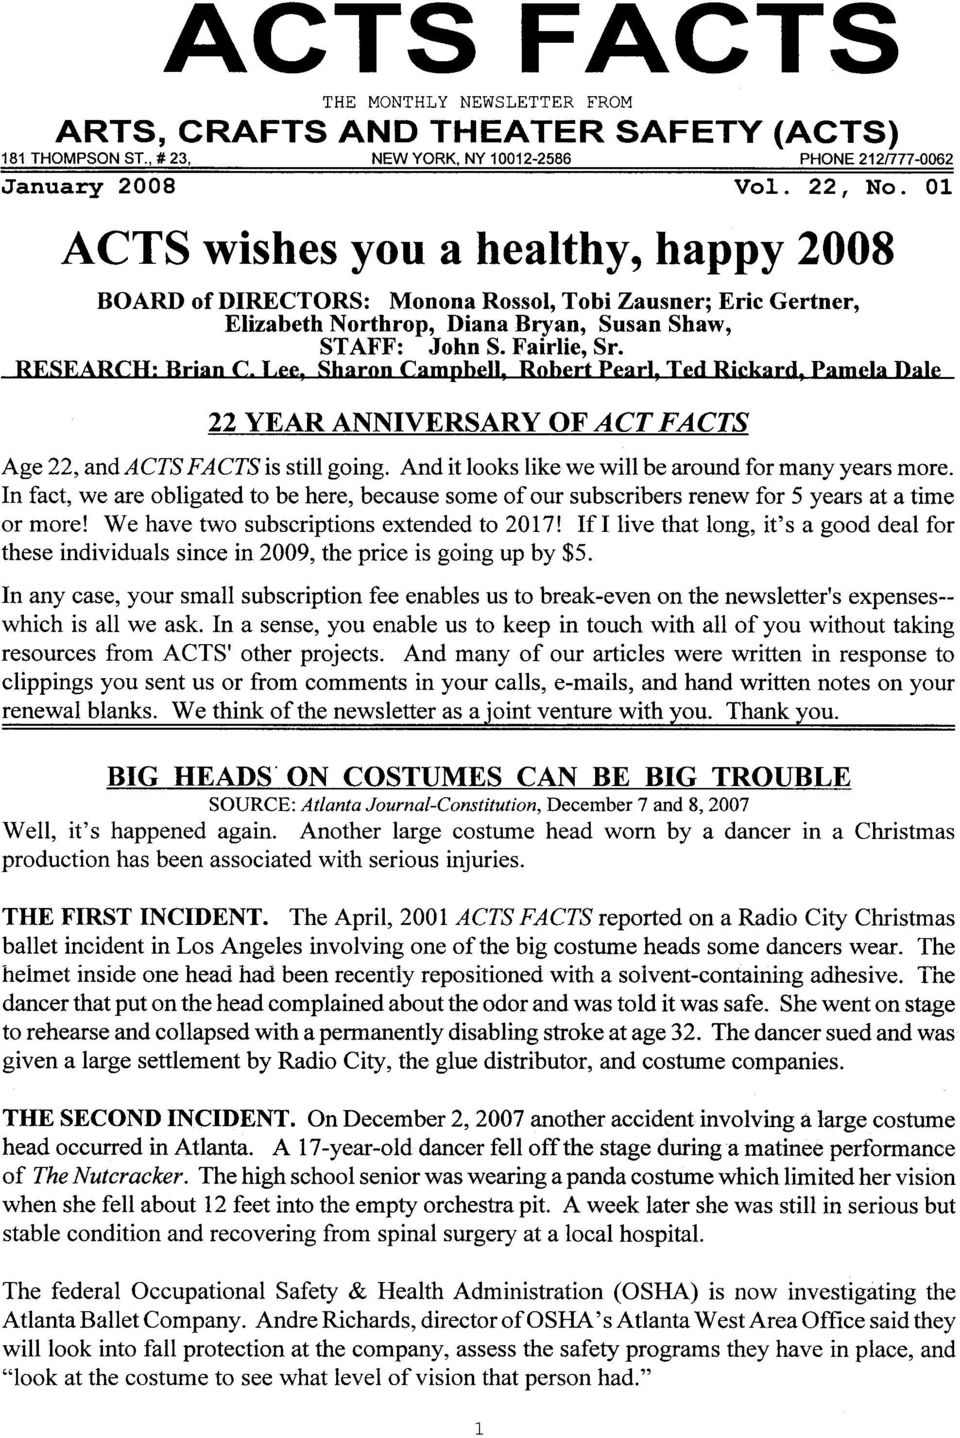 Lee, Sharon Campbell, Robert Pearl, Ted Rickard, pamela Dale 22 YEAR ANNIVERSARY OF ACTFACTS Age 22, and ACTSFACTS is still going. And it looks like we will be around for many years more.